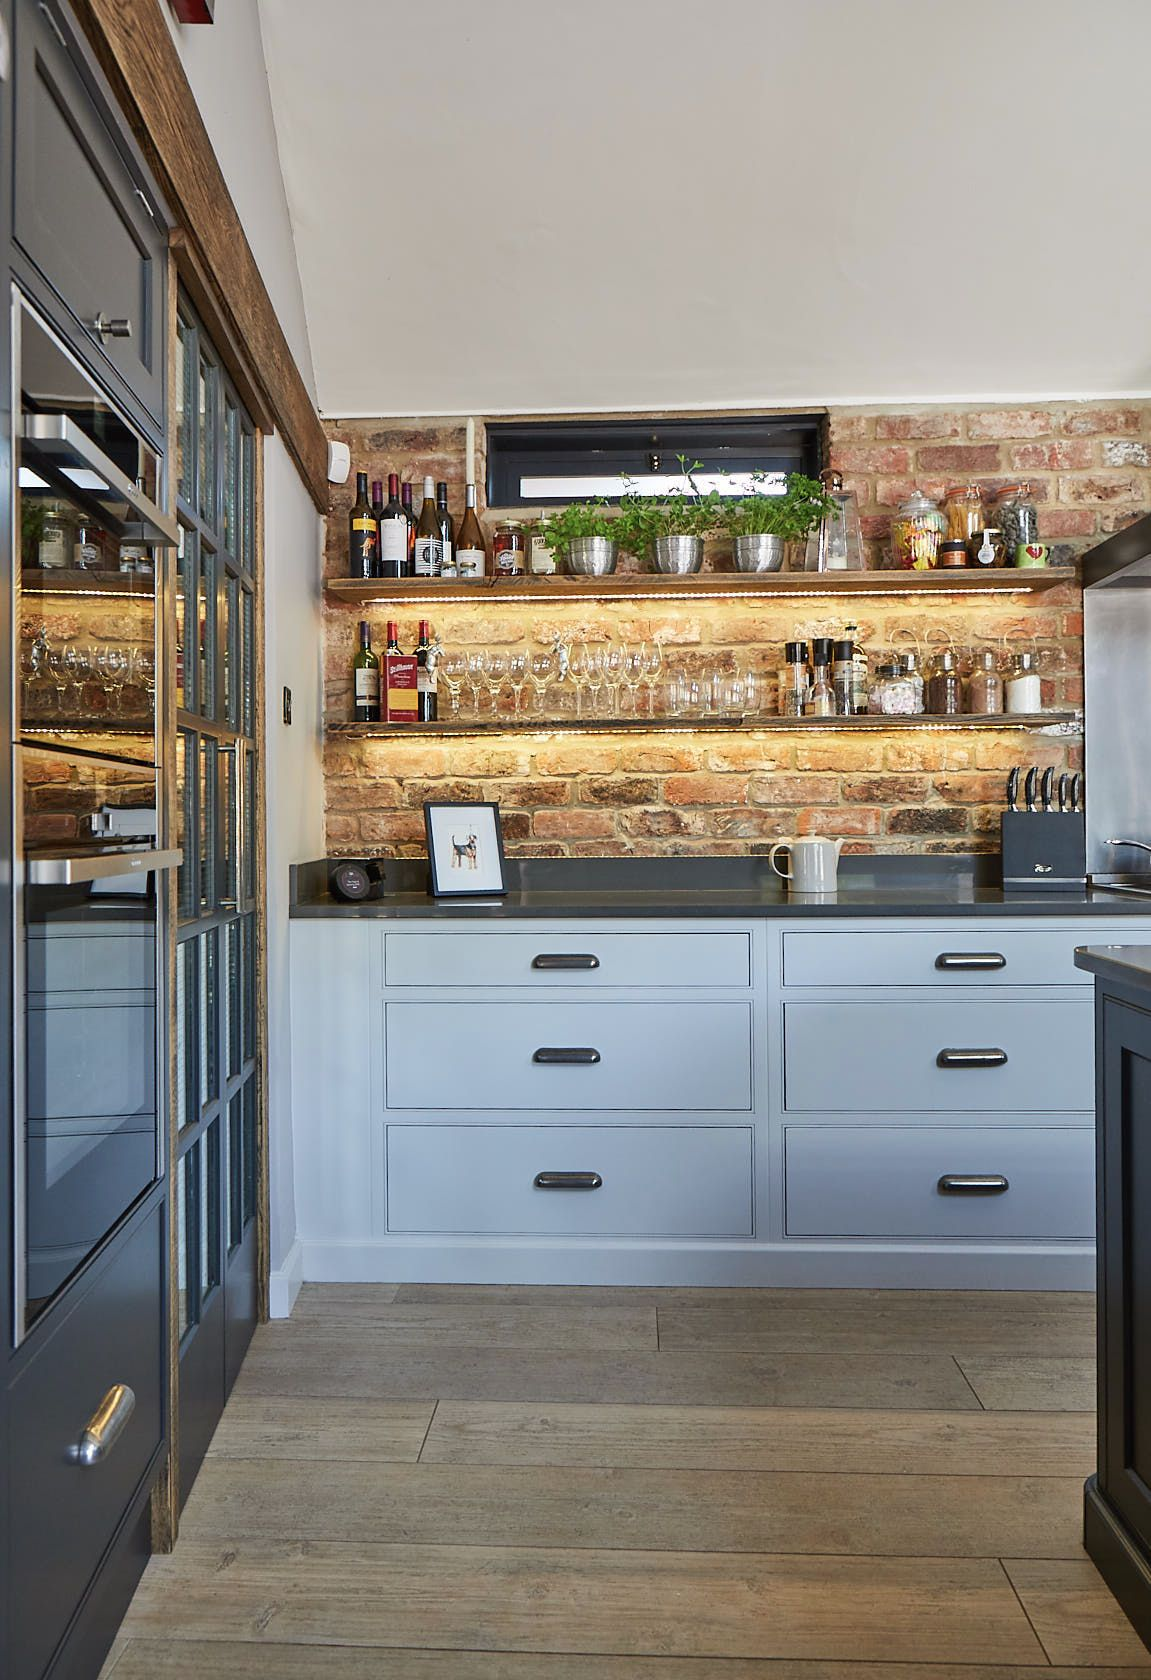 Transform Your Kitchen With The Main Company Bespoke Yorkshire